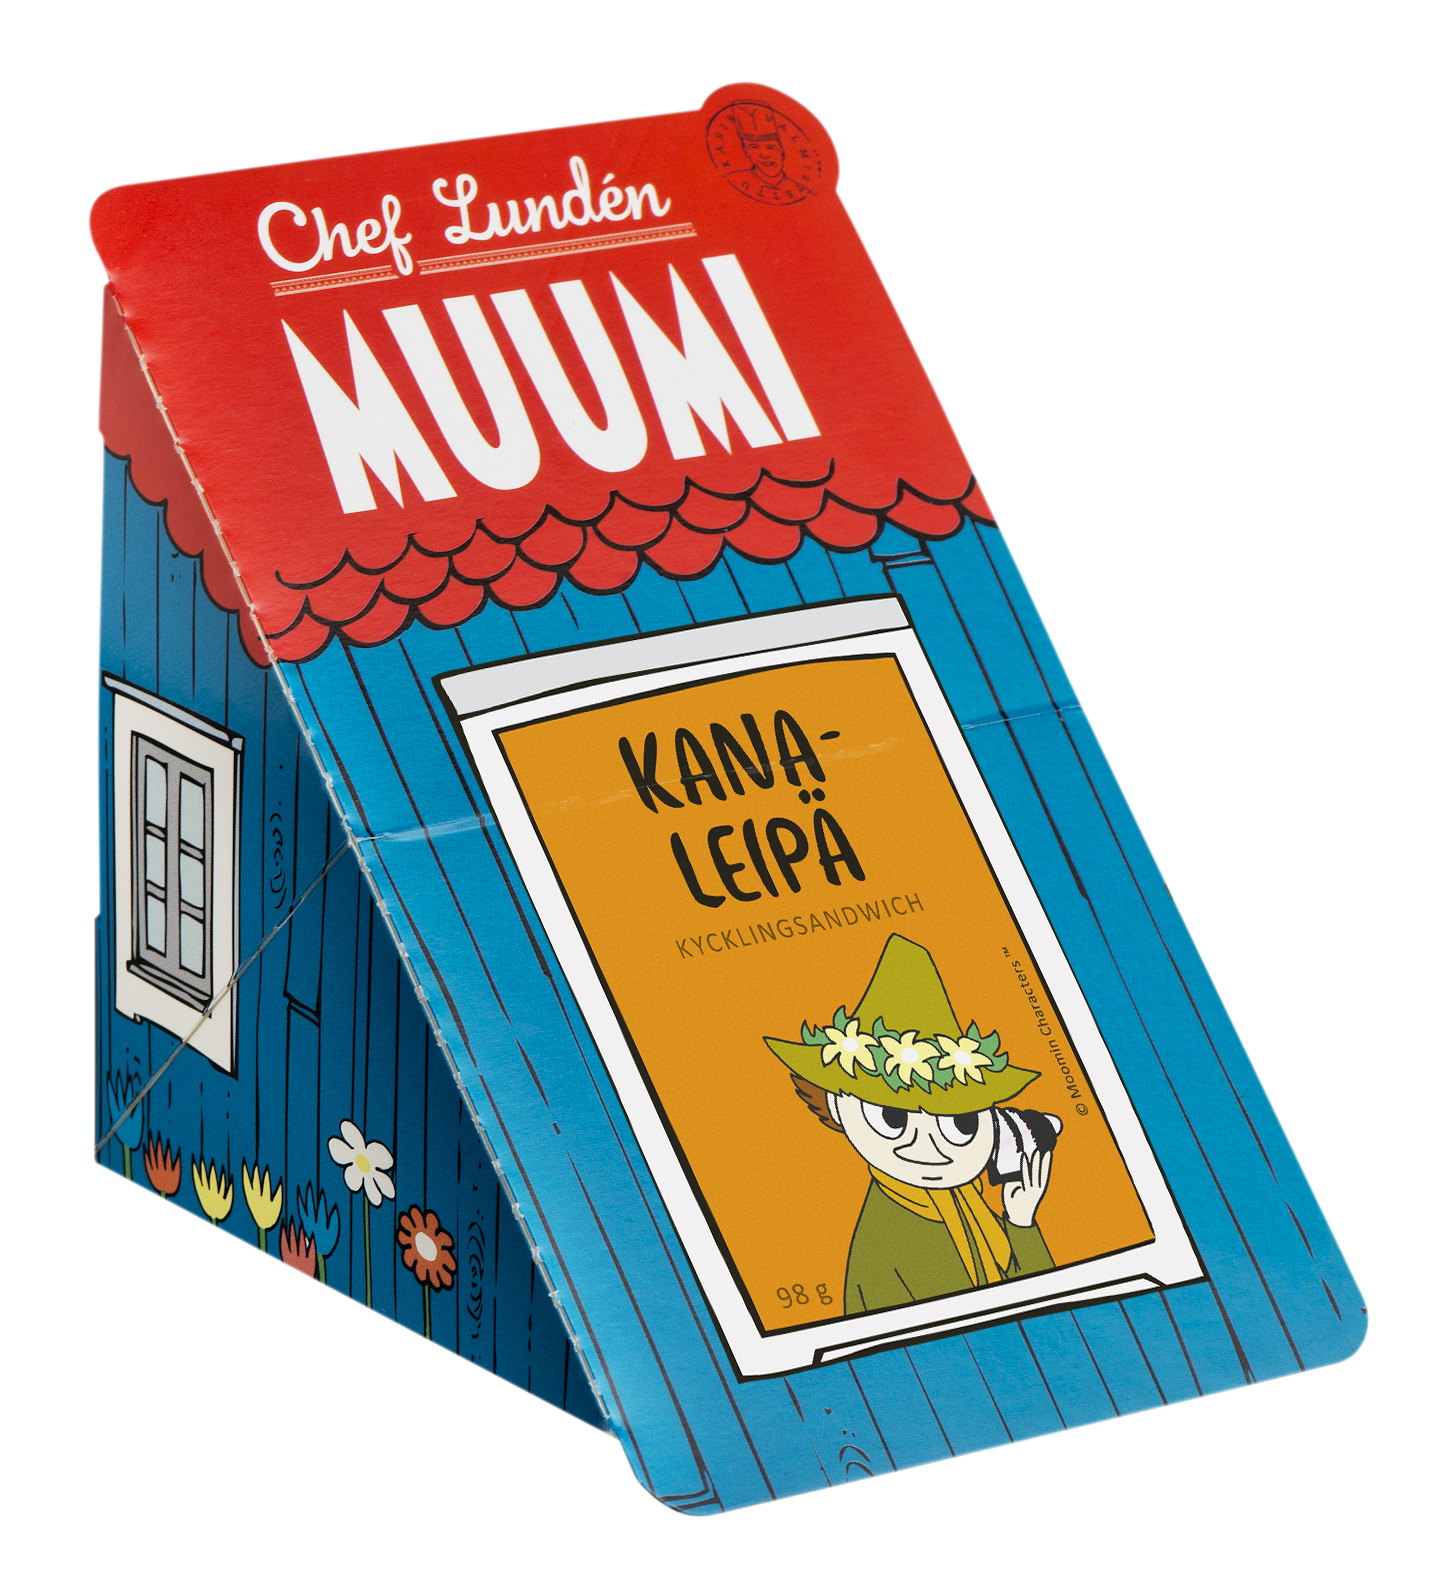 Chef Lundén Muumi Chicken Sandwich 98 g